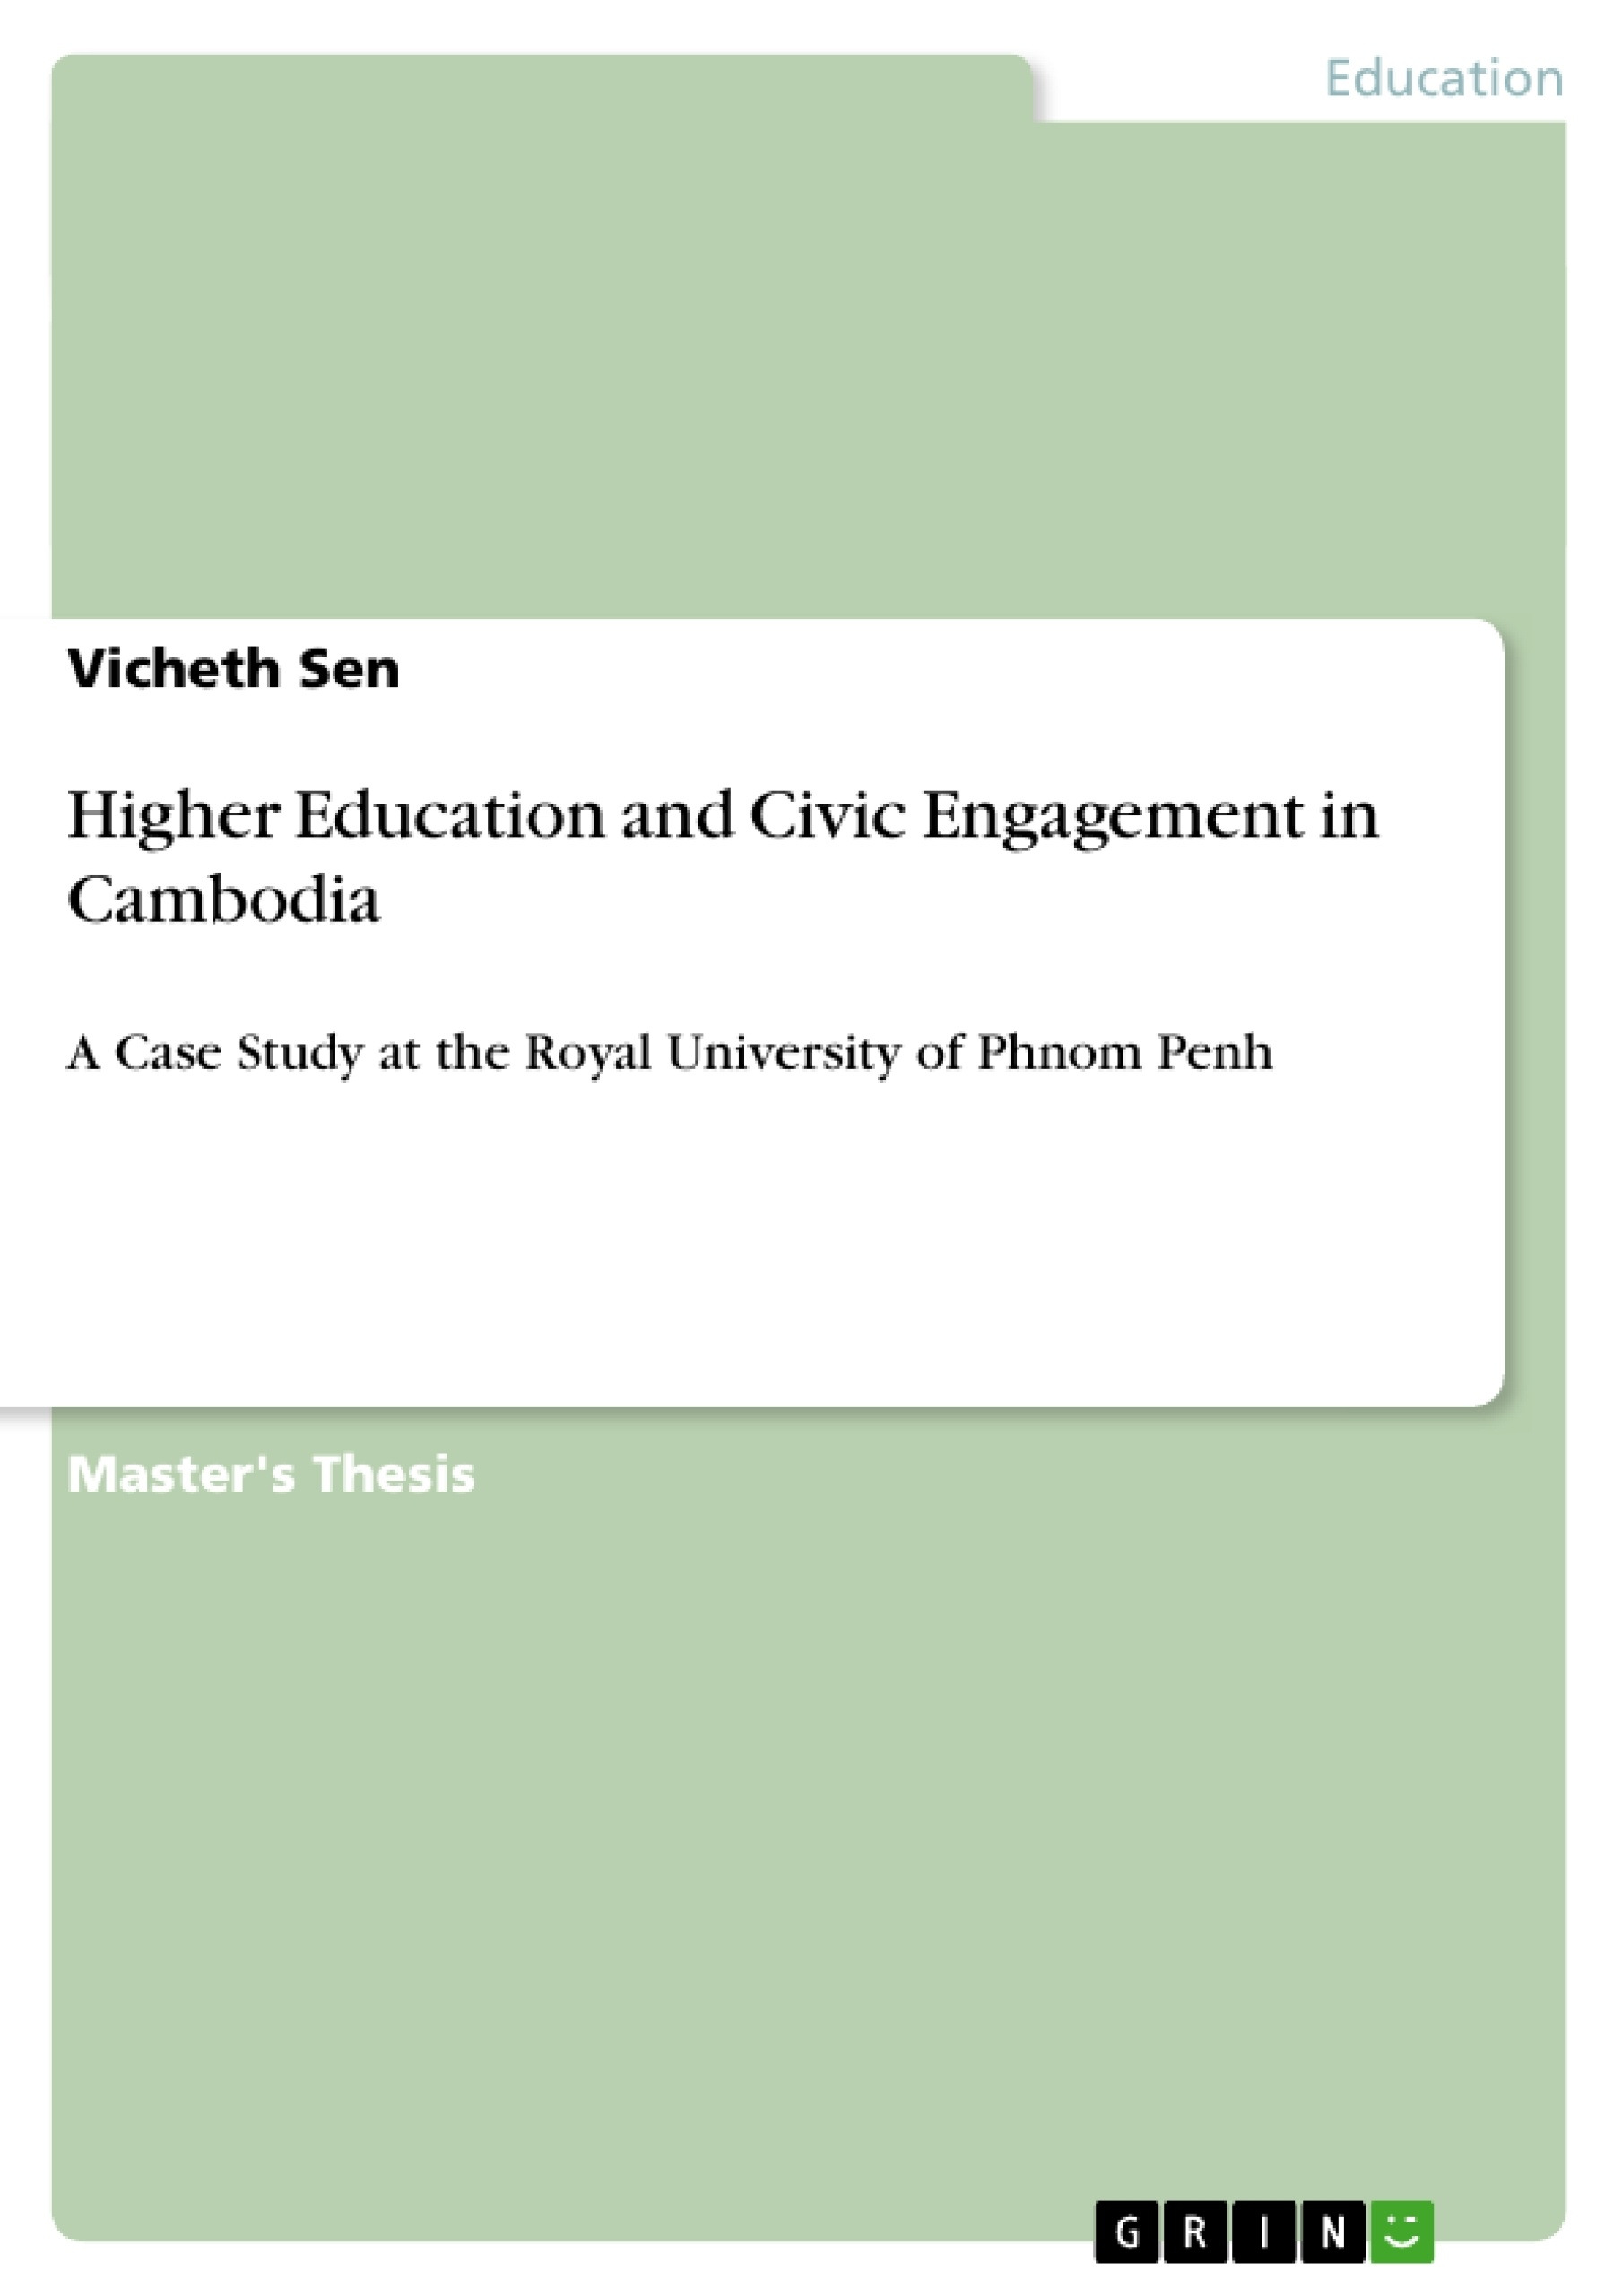 Title: Higher Education and Civic Engagement in Cambodia